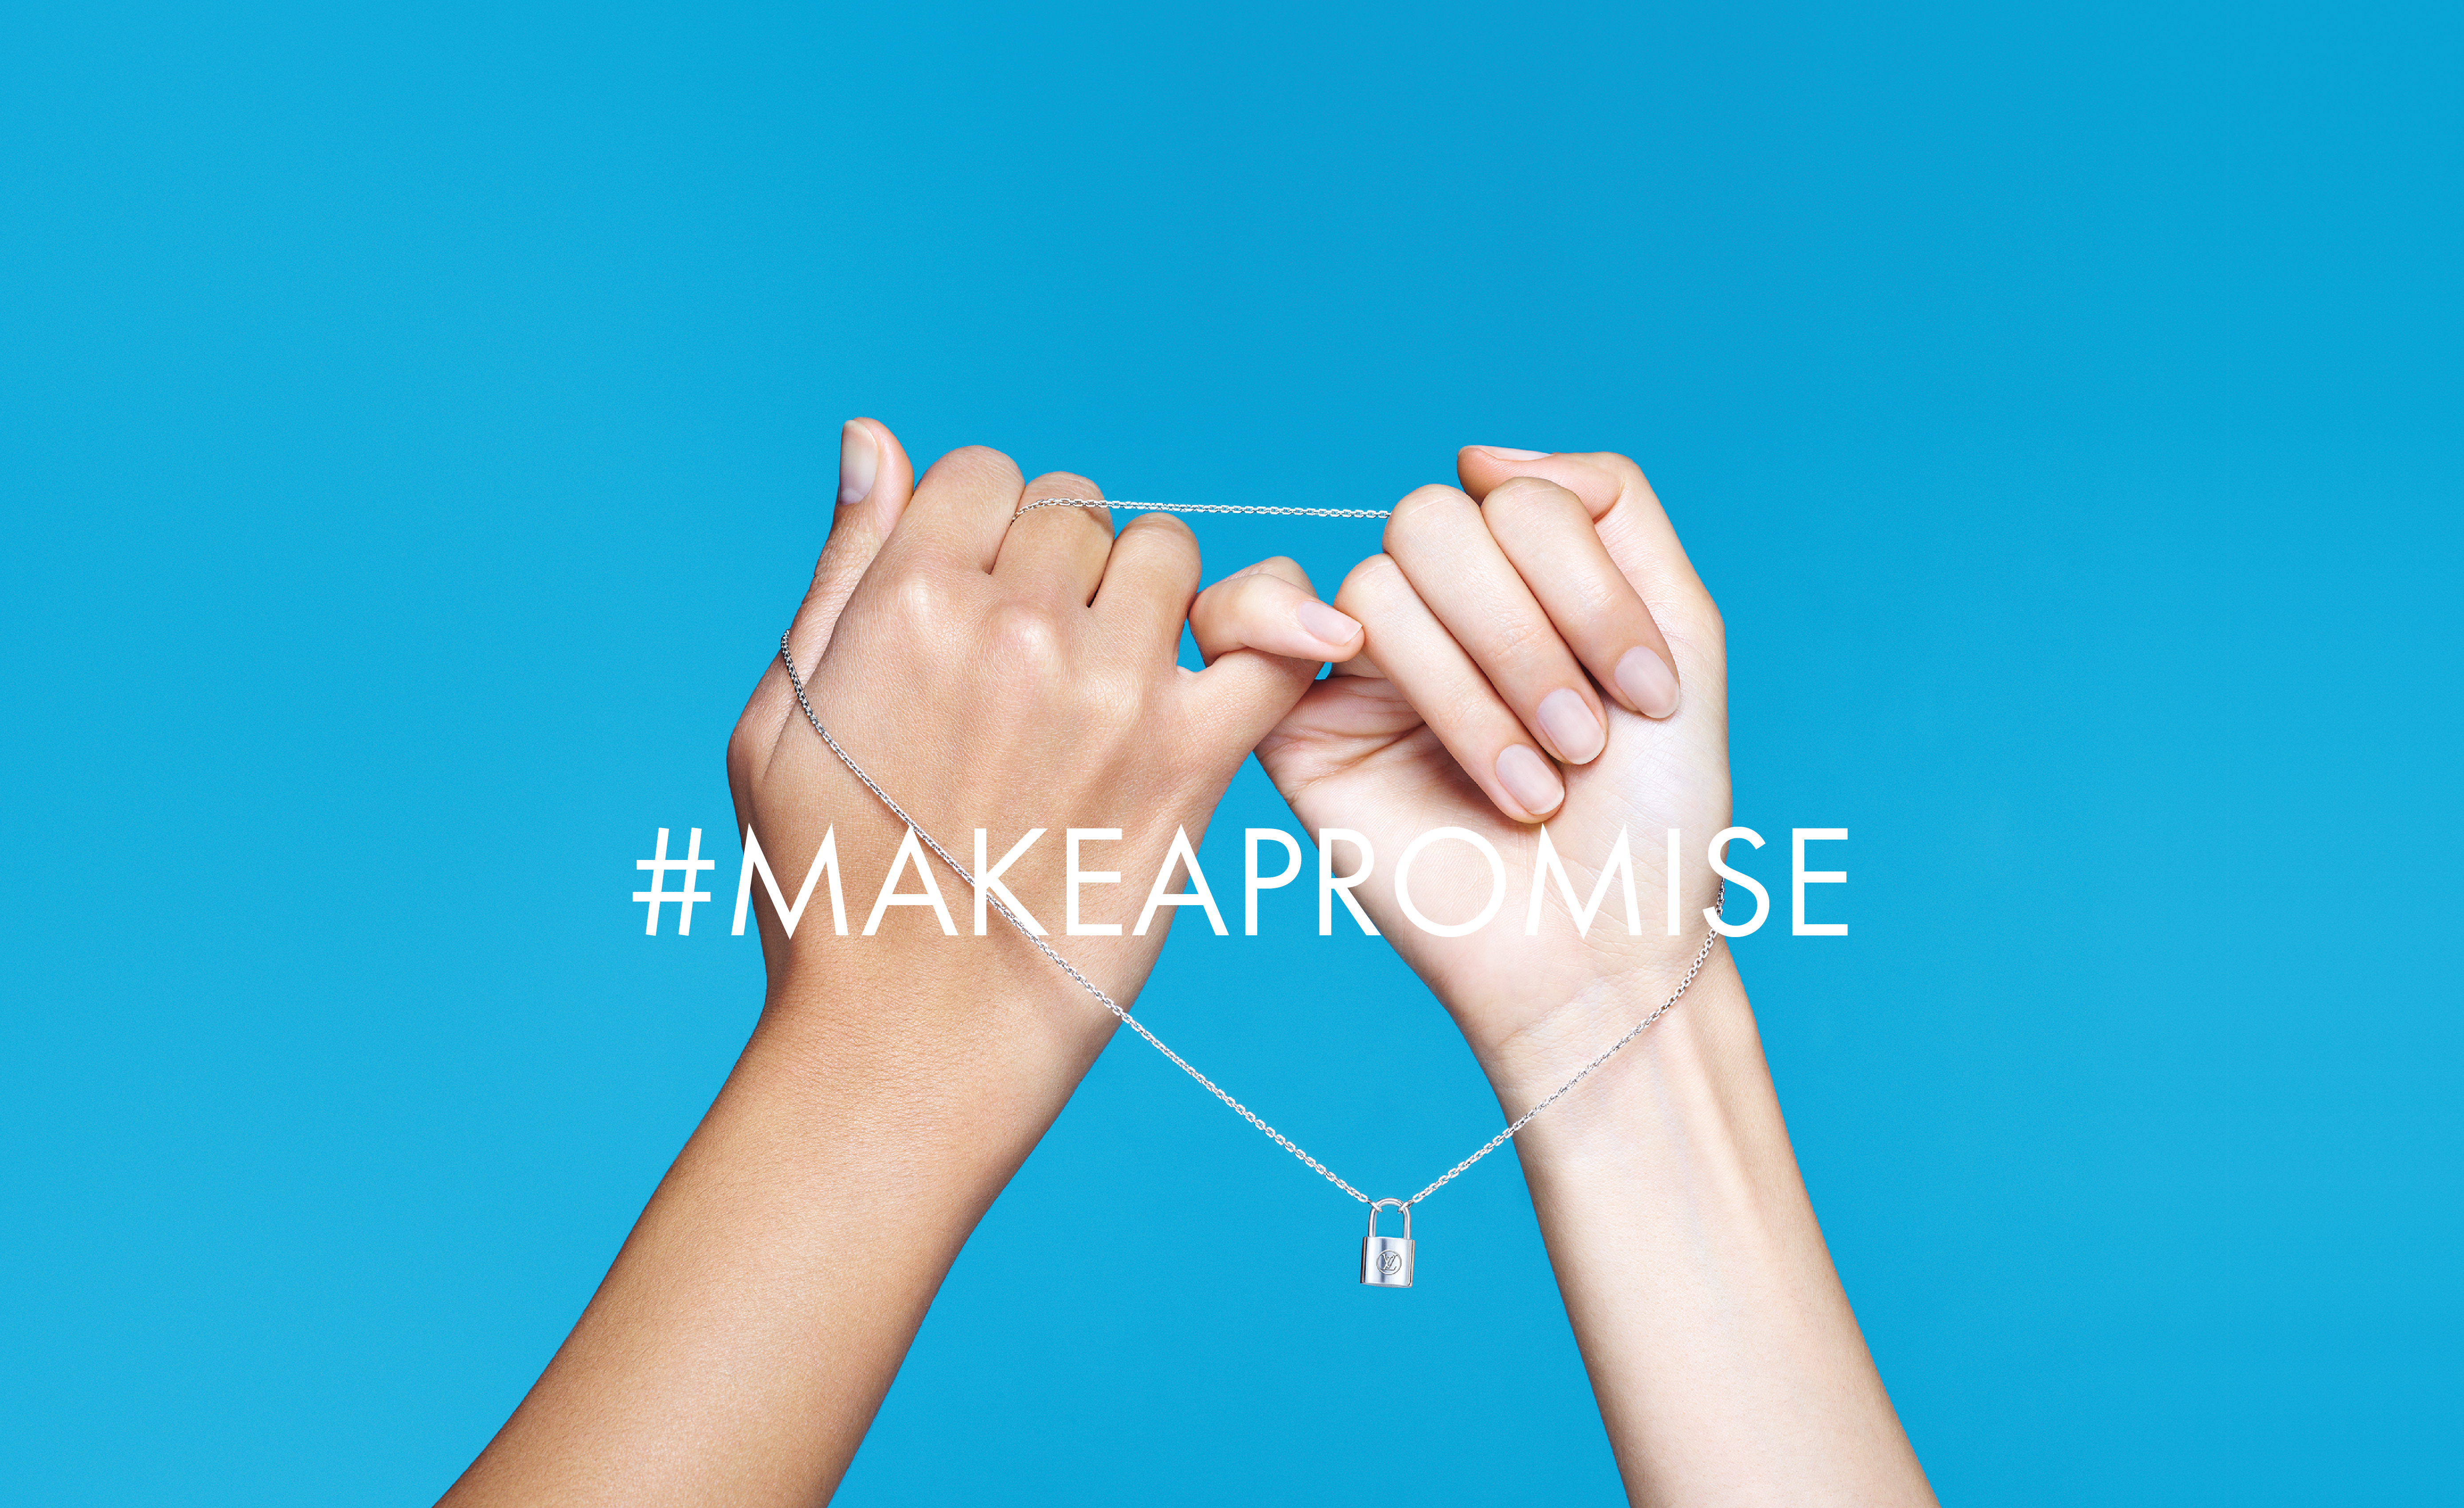 A visual for Louis Vuitton's #Makeapromise initiative in partnership with the UNICEF fund